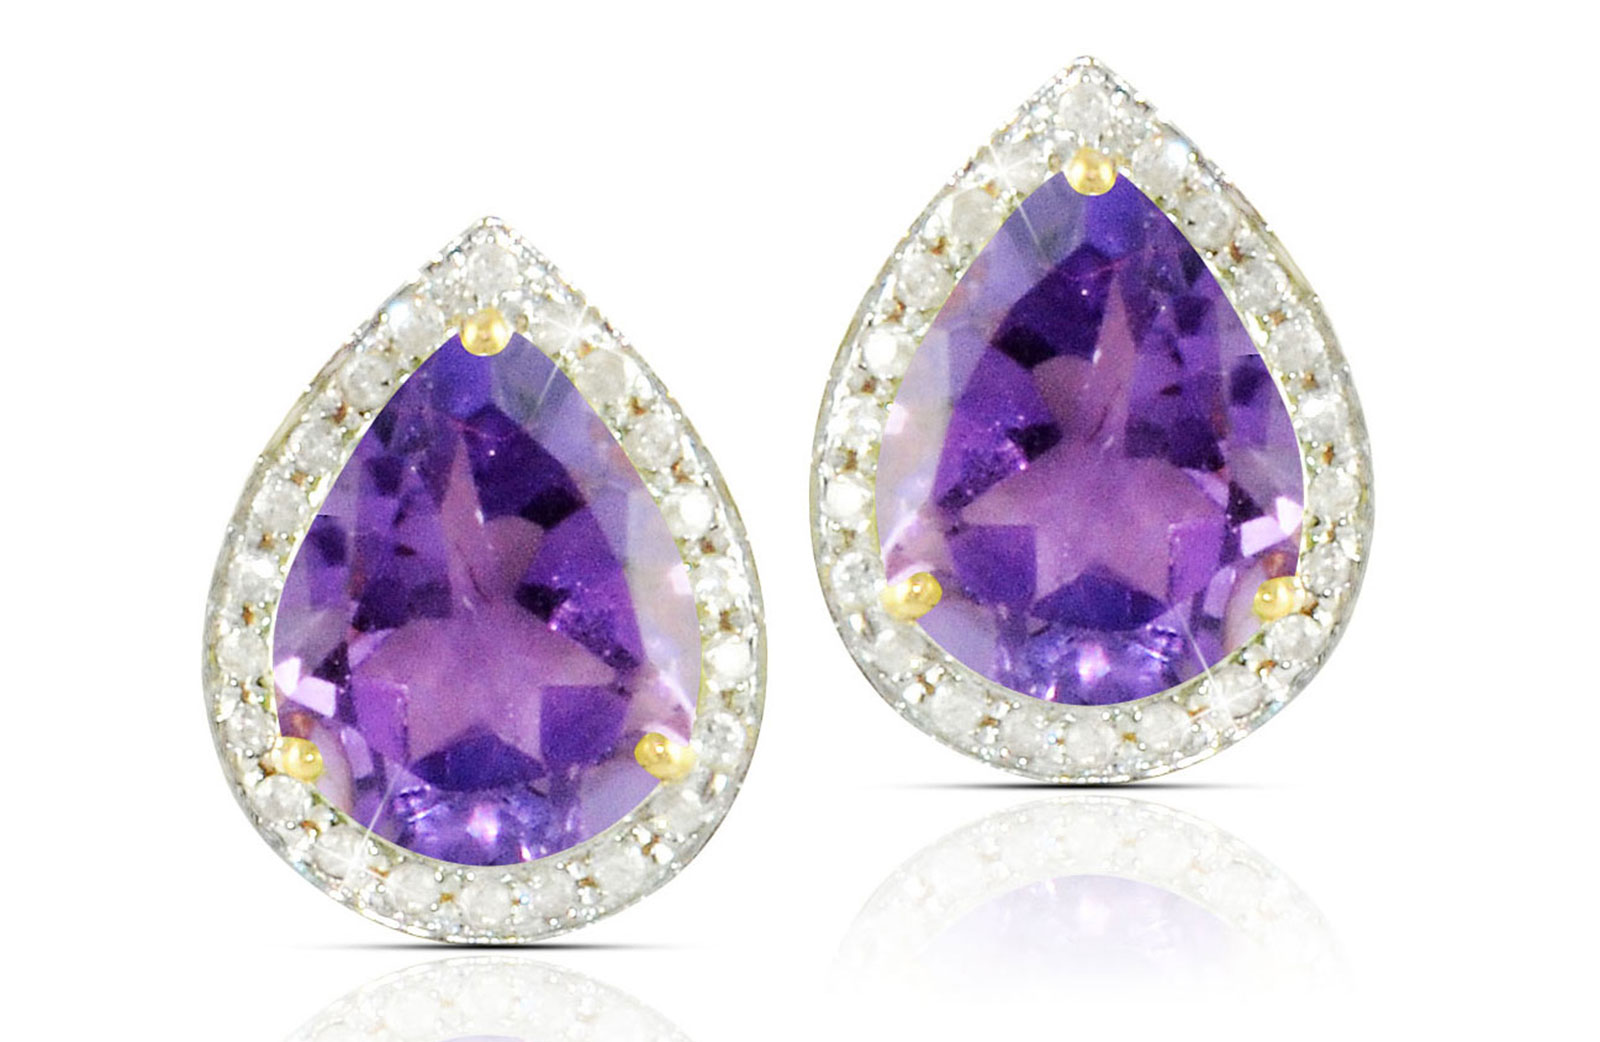 Vera Perla 18k  Gold 10mm Genuine Drop  Cut Amethyst 0.24Ct Genuine Diamonds earrings